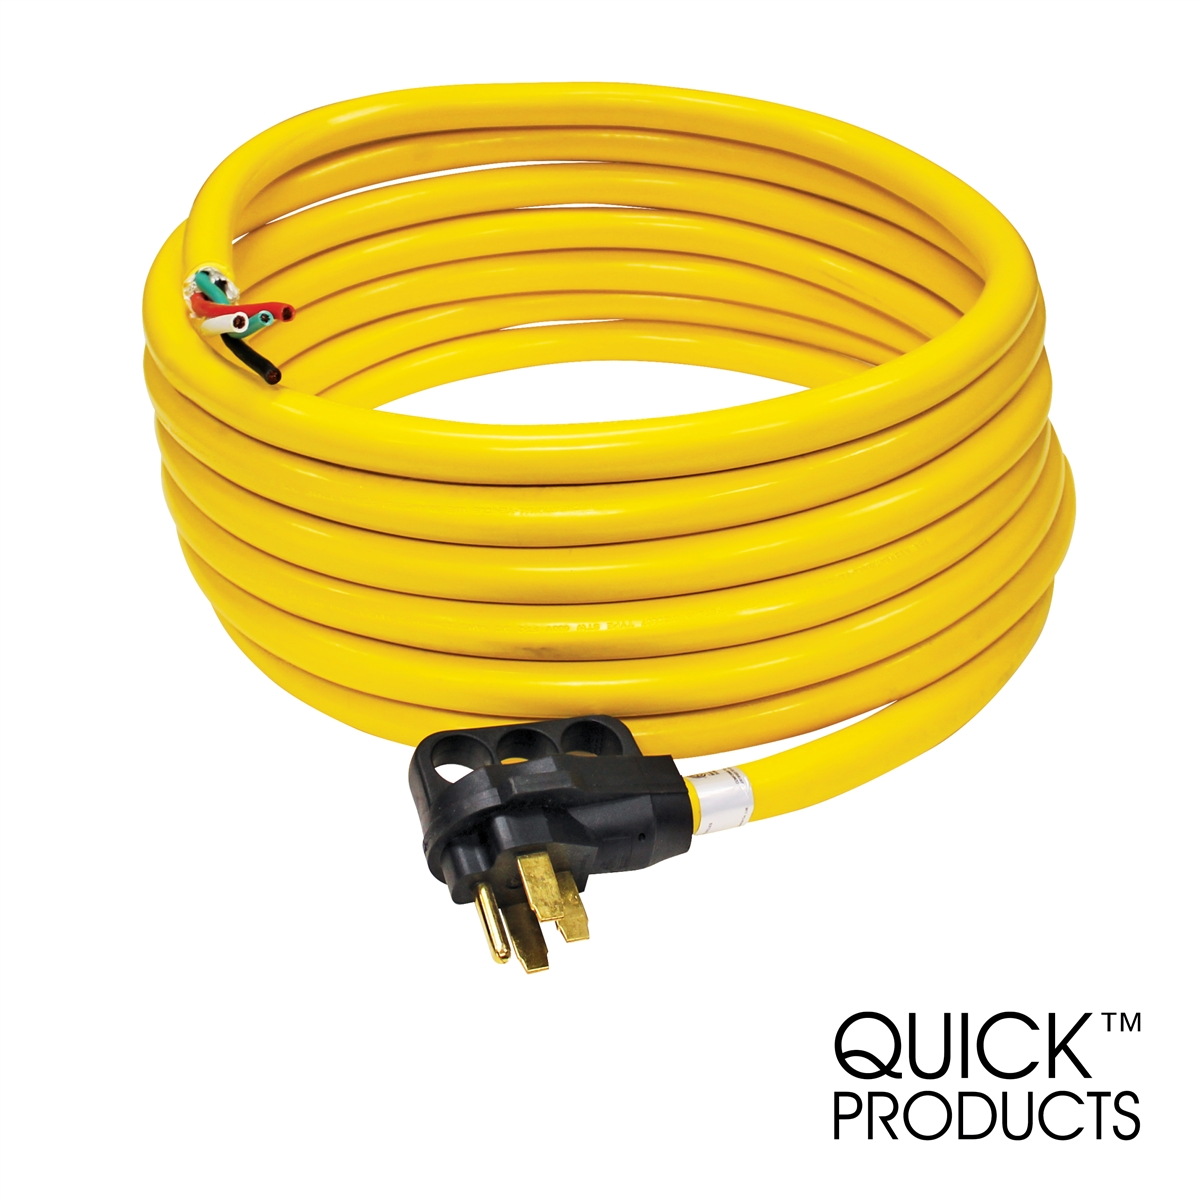 Sensational Quick Products Qp 50 30H 50 Amp Rv Cord Grip Handle Plug And 6 Wiring Cloud Hisonuggs Outletorg